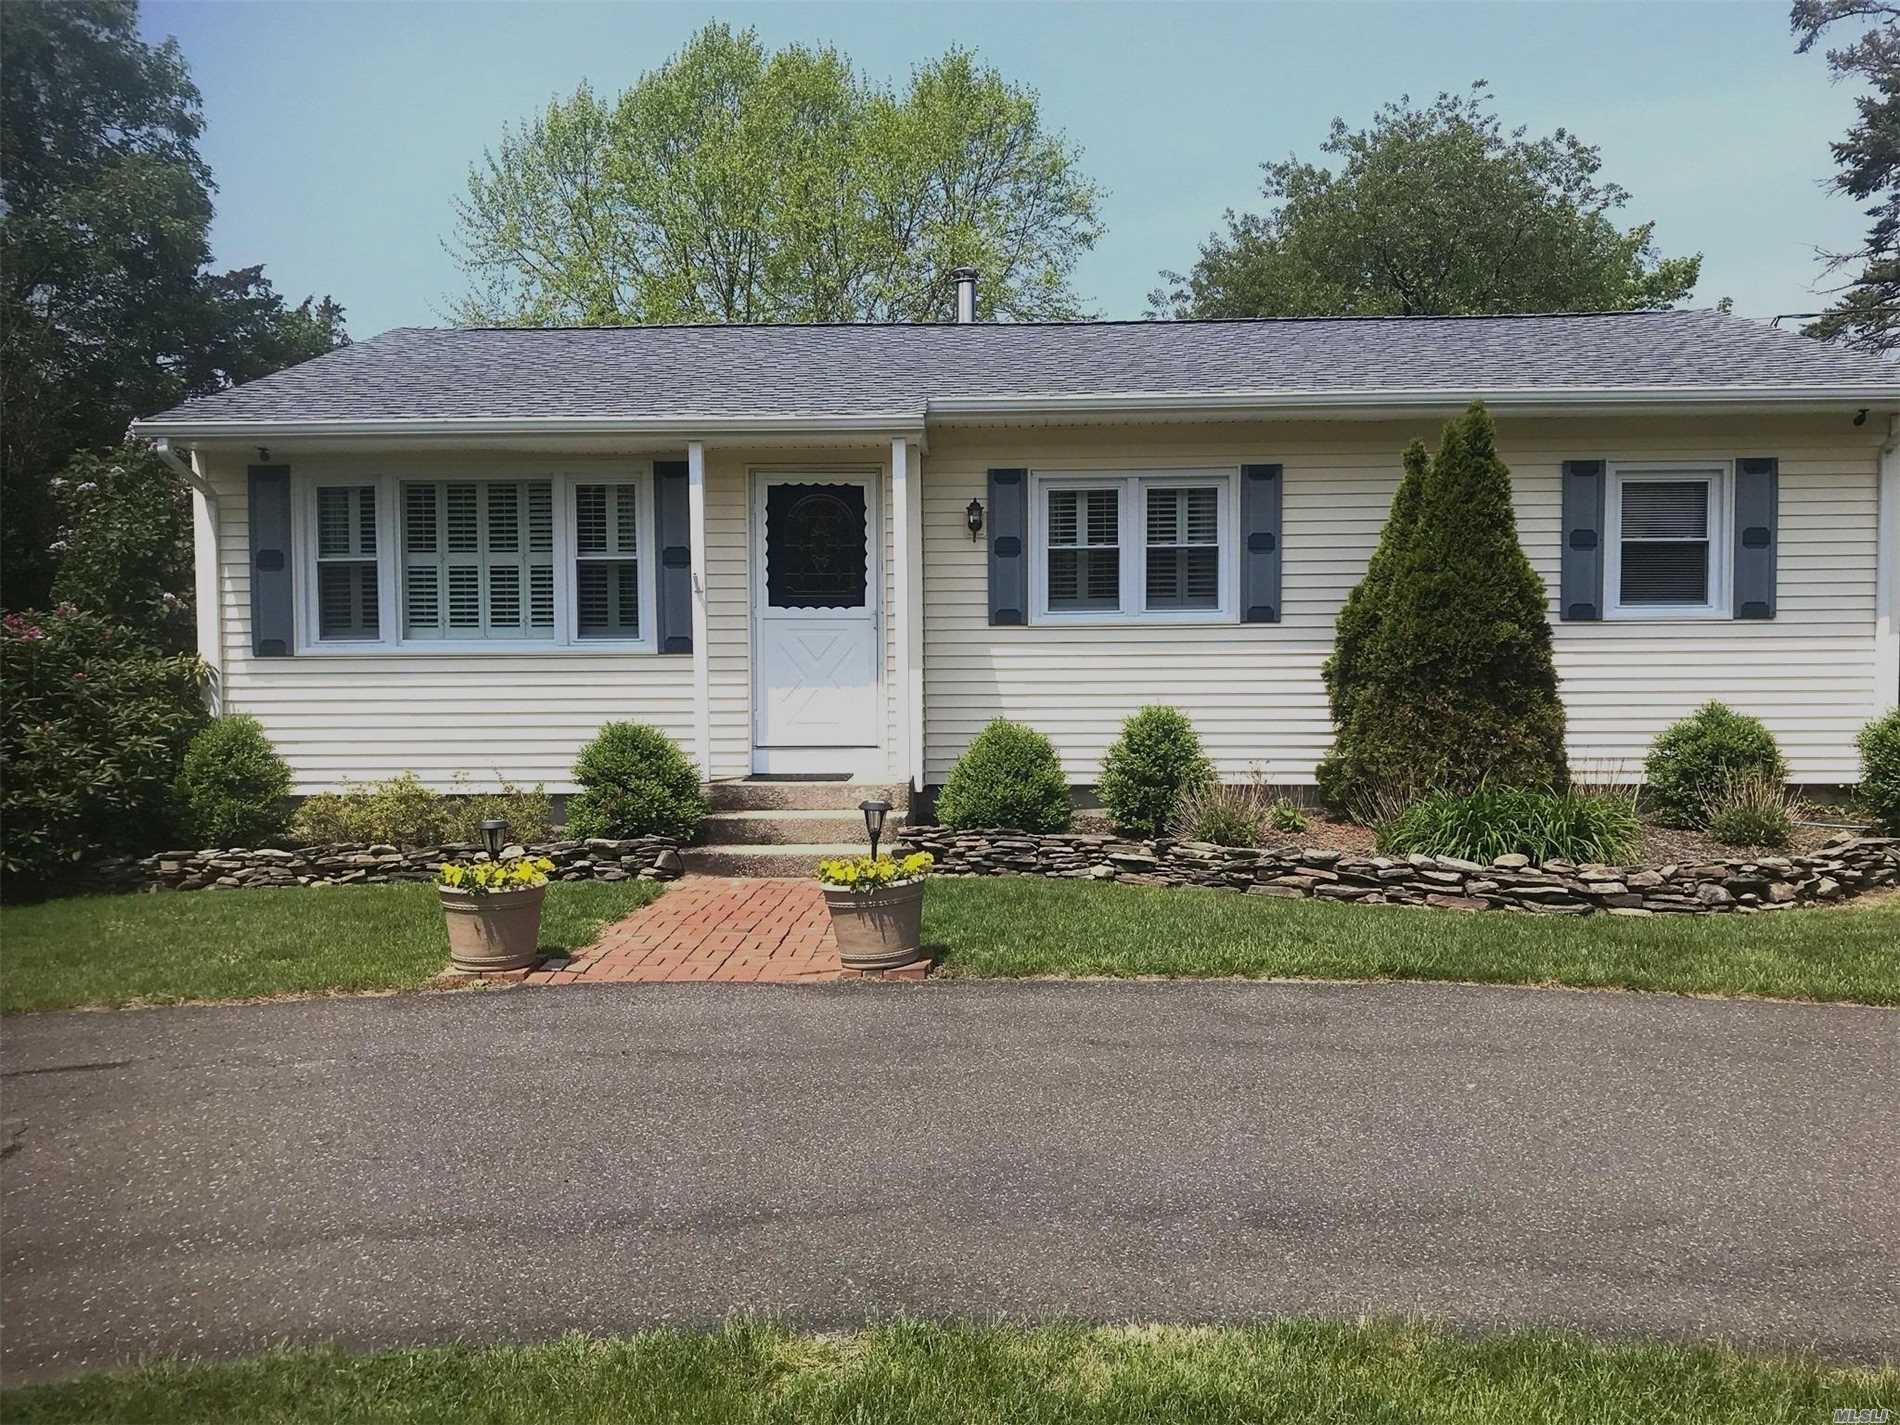 Charming Set Back Ranch with 3 Bedrooms & 2 Bathrooms. Dinning Room and Living Room. Park like grounds, (room for pool). Hardwood floors throughout. Updated kitchen. CAC Desirable quiet area. Eastport is a great place to live located in Southampton Township with Low Taxes. Close to town, beaches, wineries. Must see to appreciate!